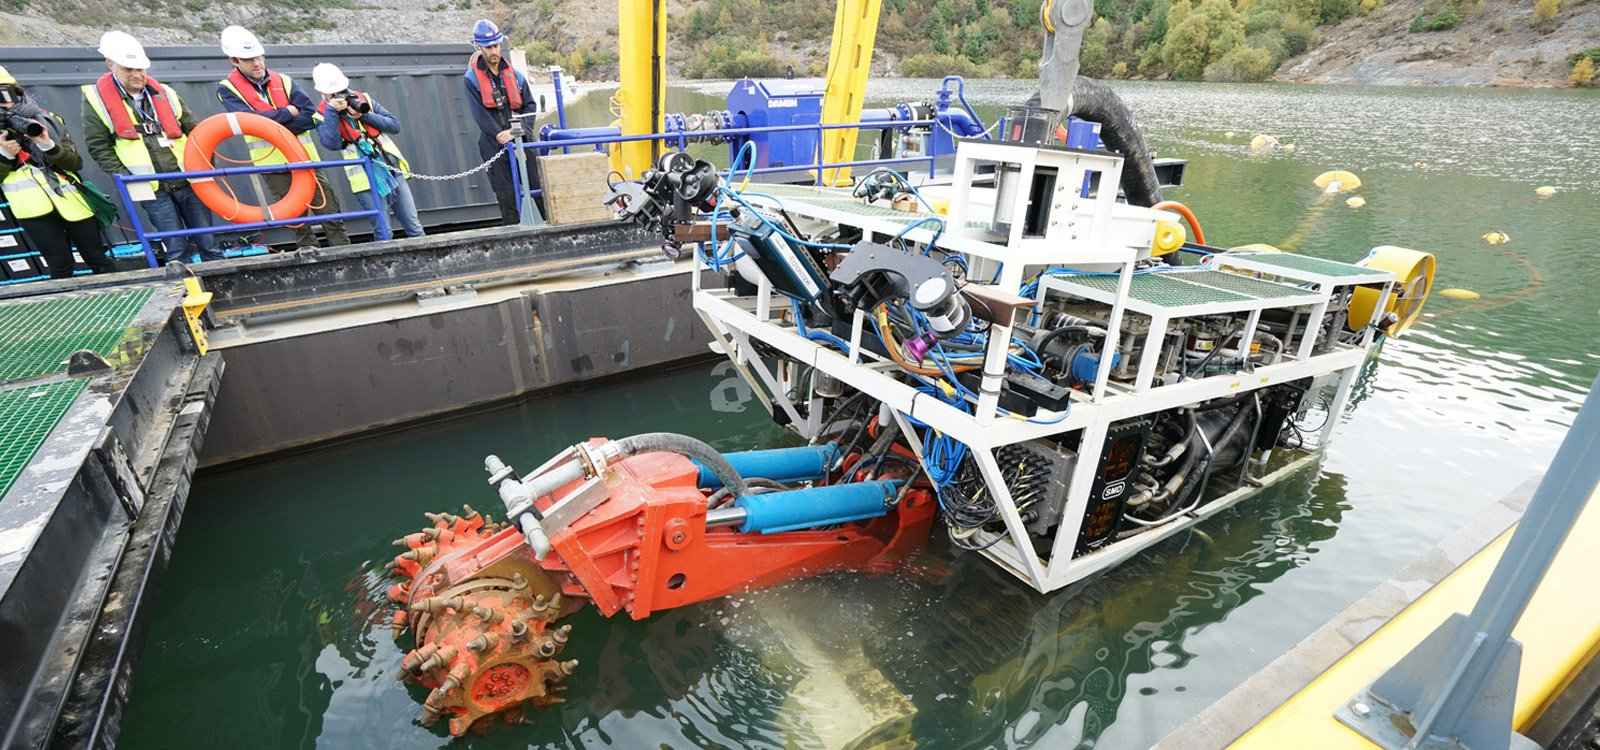 The launch and recovery vessel (LARV), lowers the mining vehicle through the water to the mine floor, after which the vehicle can be positioned to begin cutting.